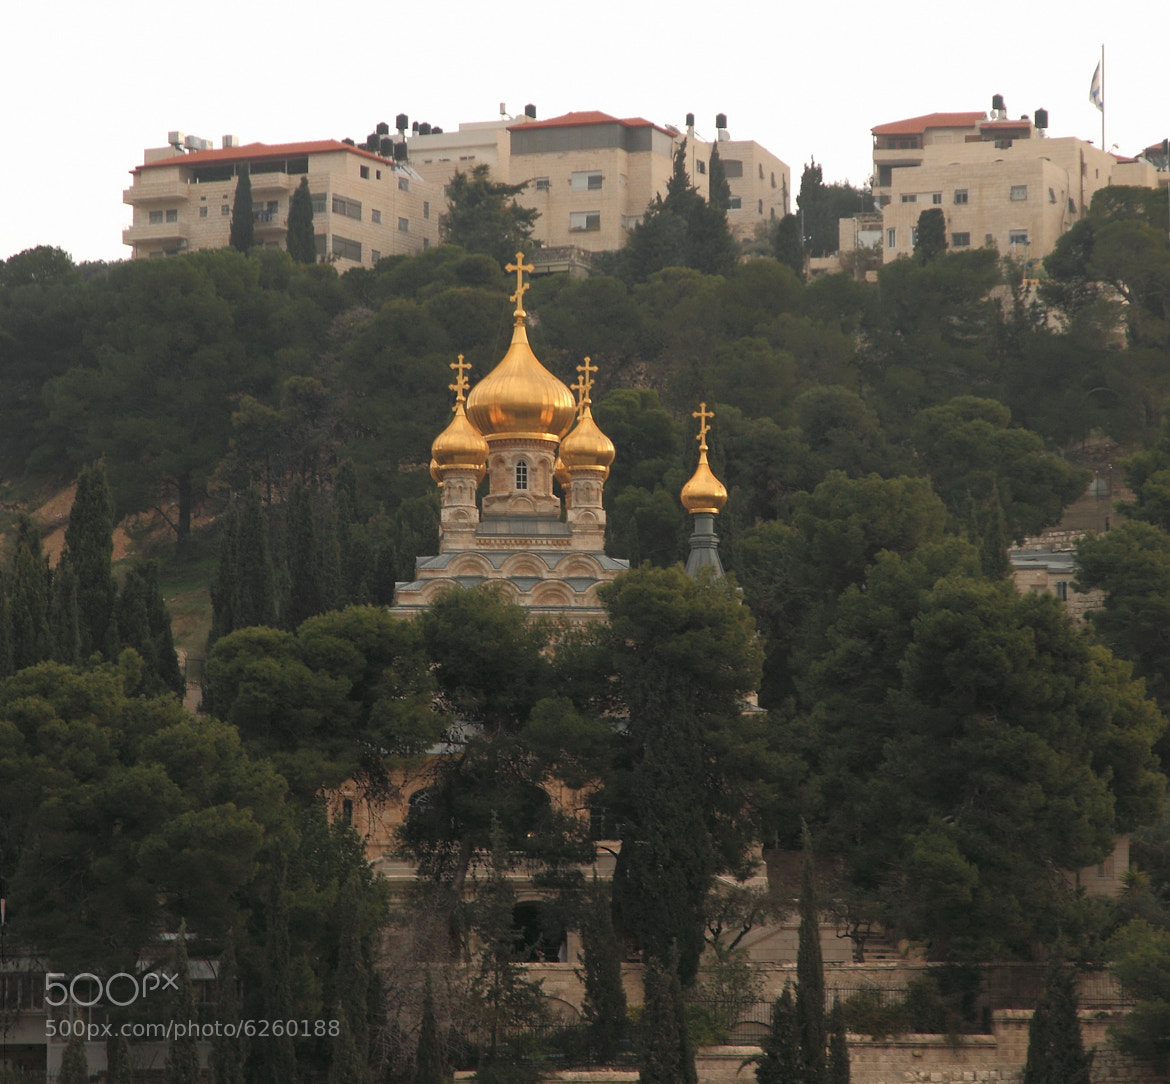 Photograph Winter in Jerusalem, the other angle. by Andrey Erofeev on 500px